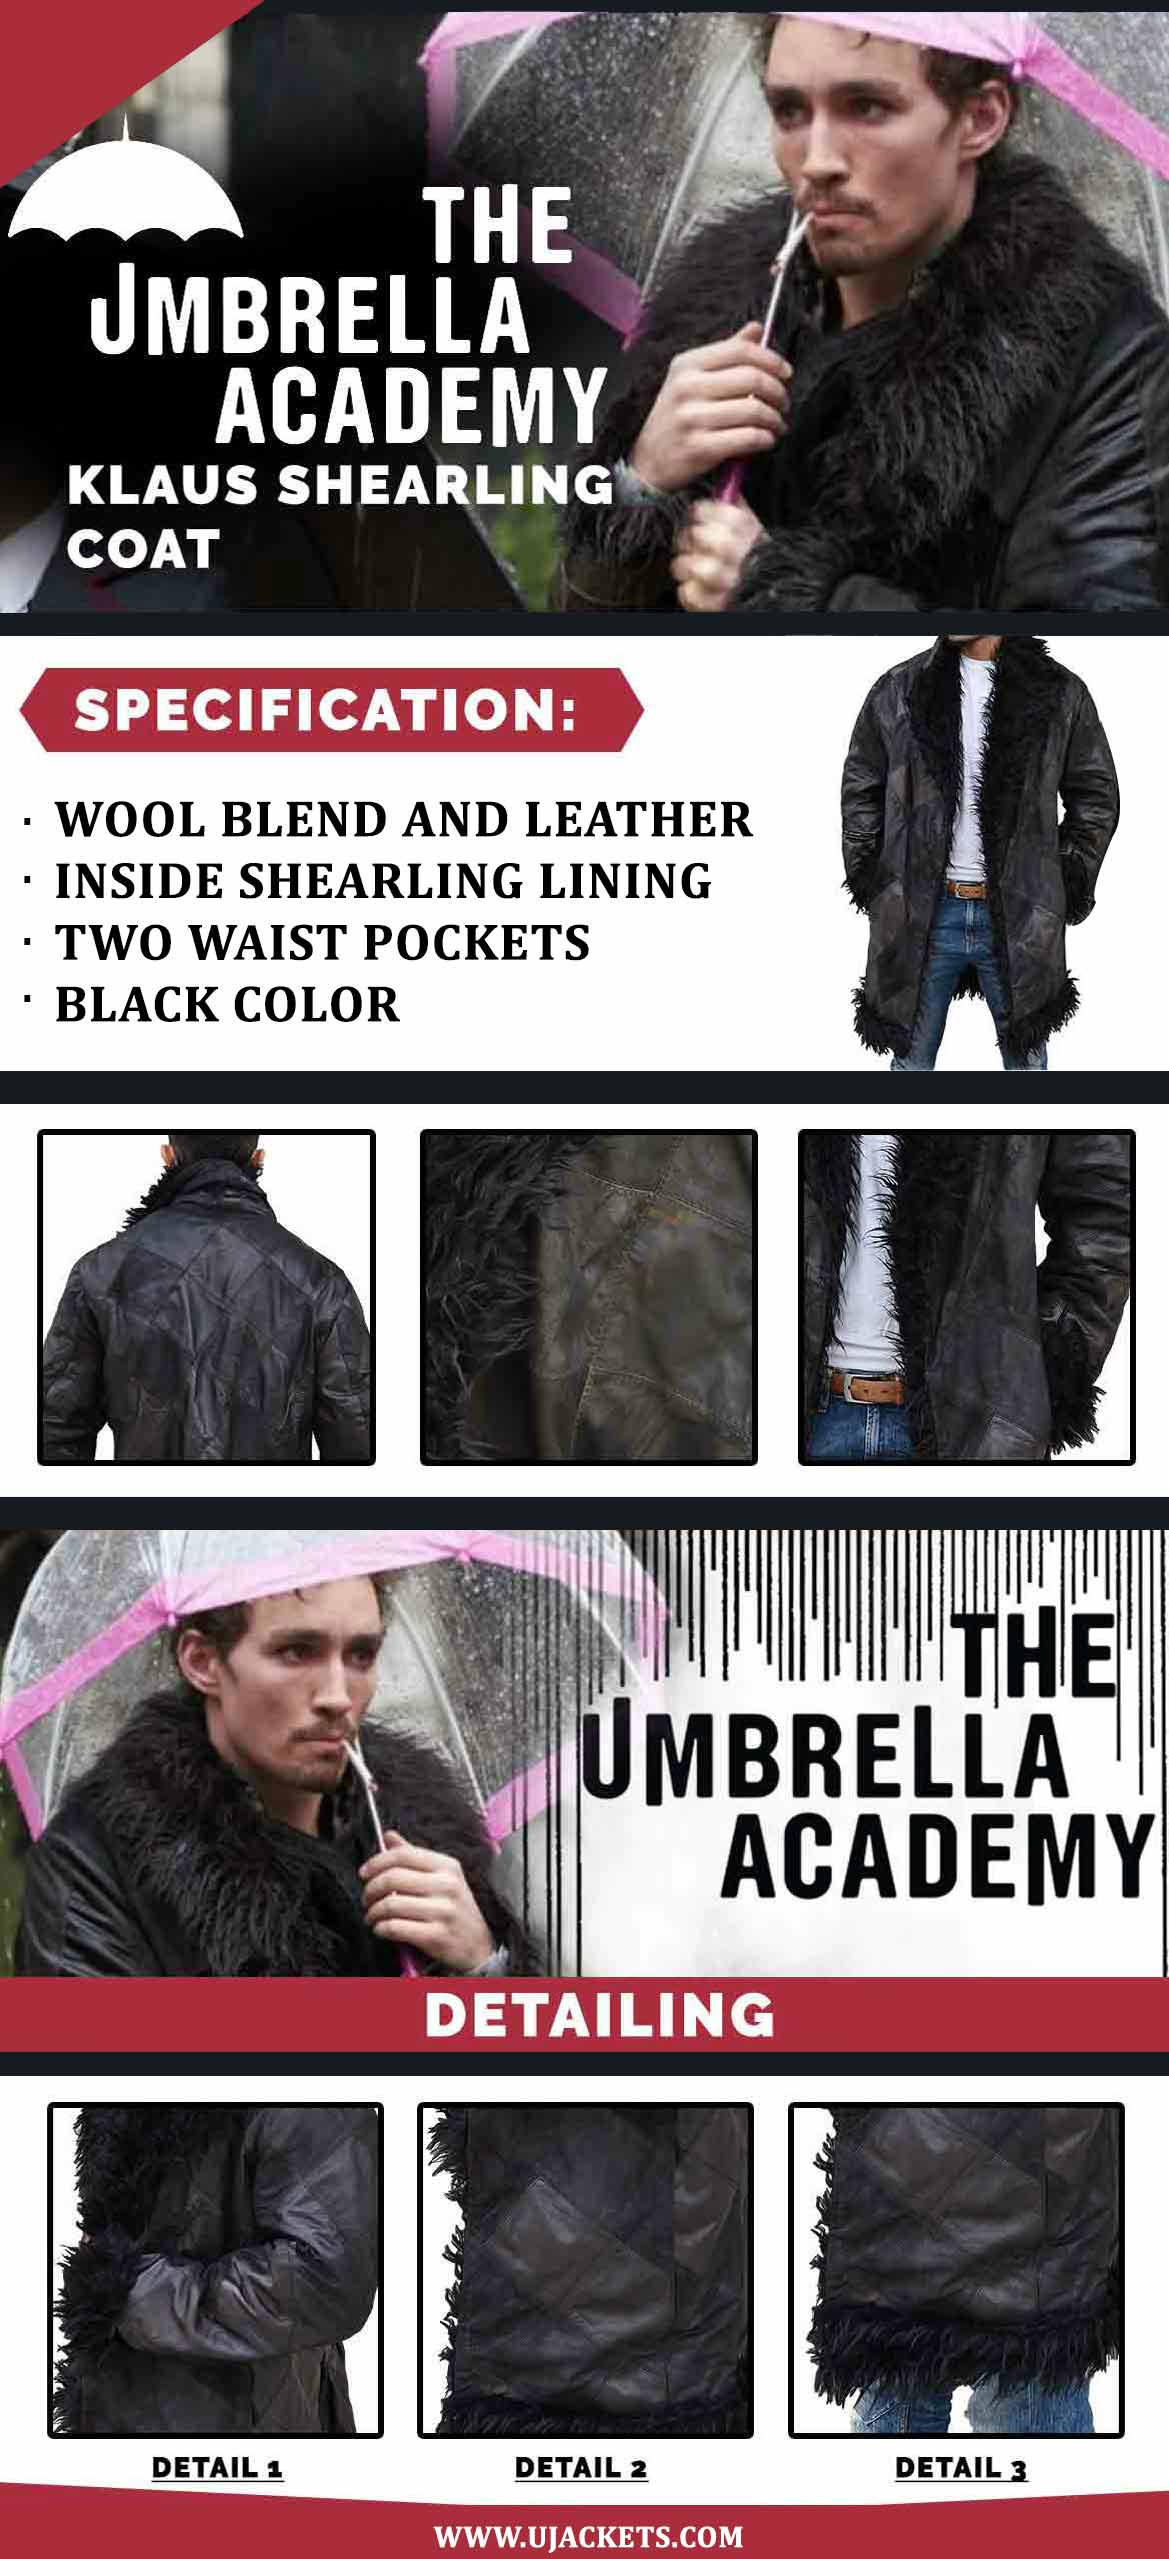 The-Umbrella-Academy-Klaus-Shearling-Coat